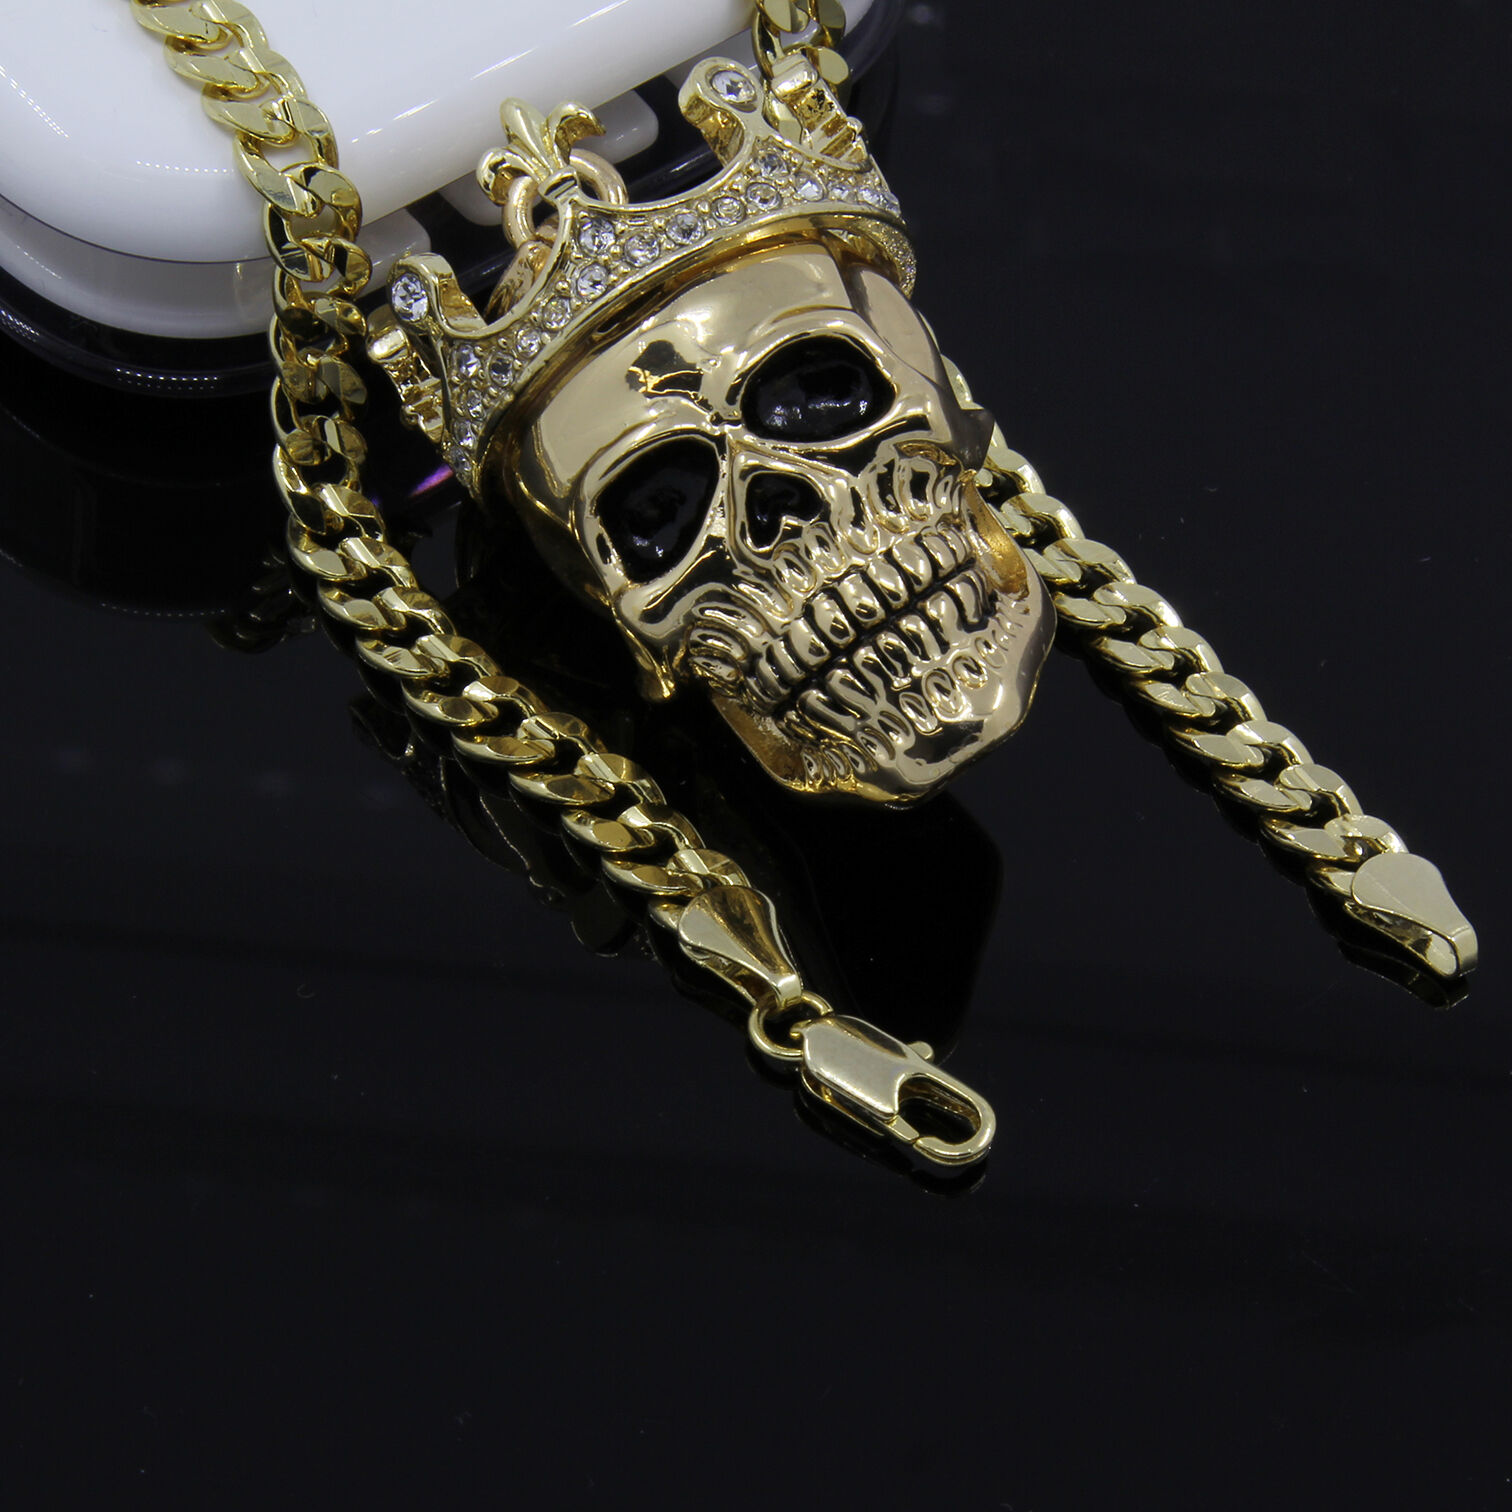 ant skull trace necklace gold sil plated sterling silver m product pendant large lg up pendants